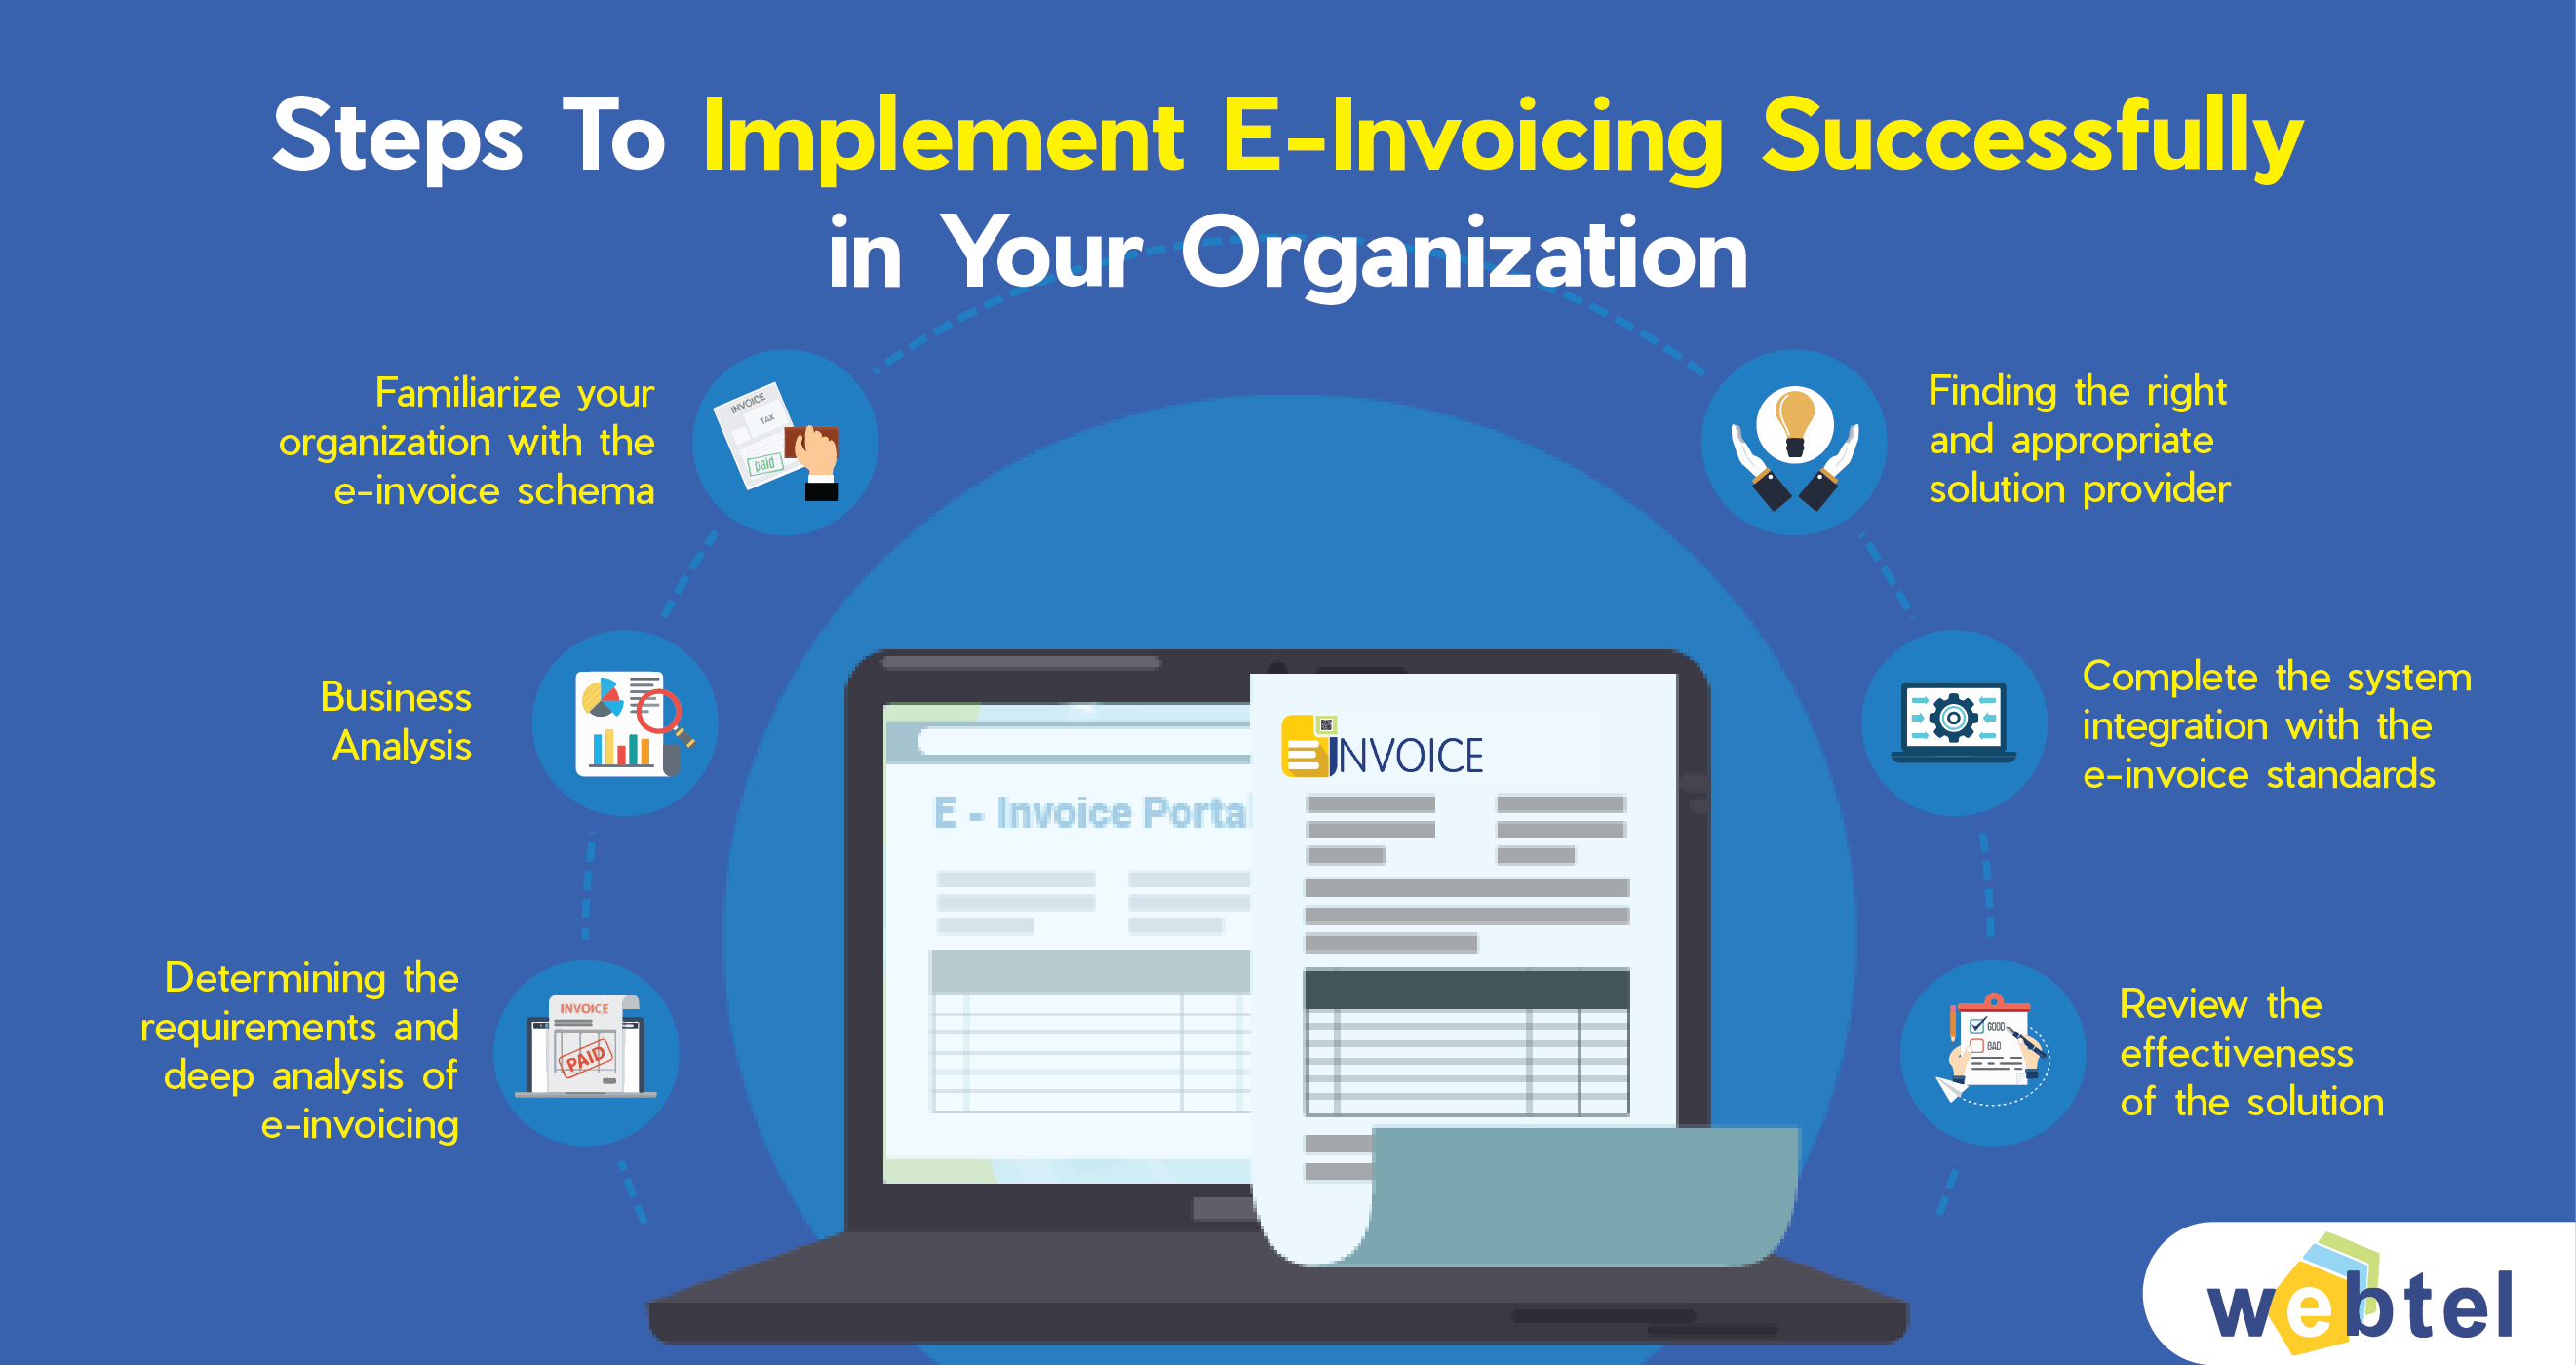 Steps To Implement E-Invoicing Successfully In Your Organization